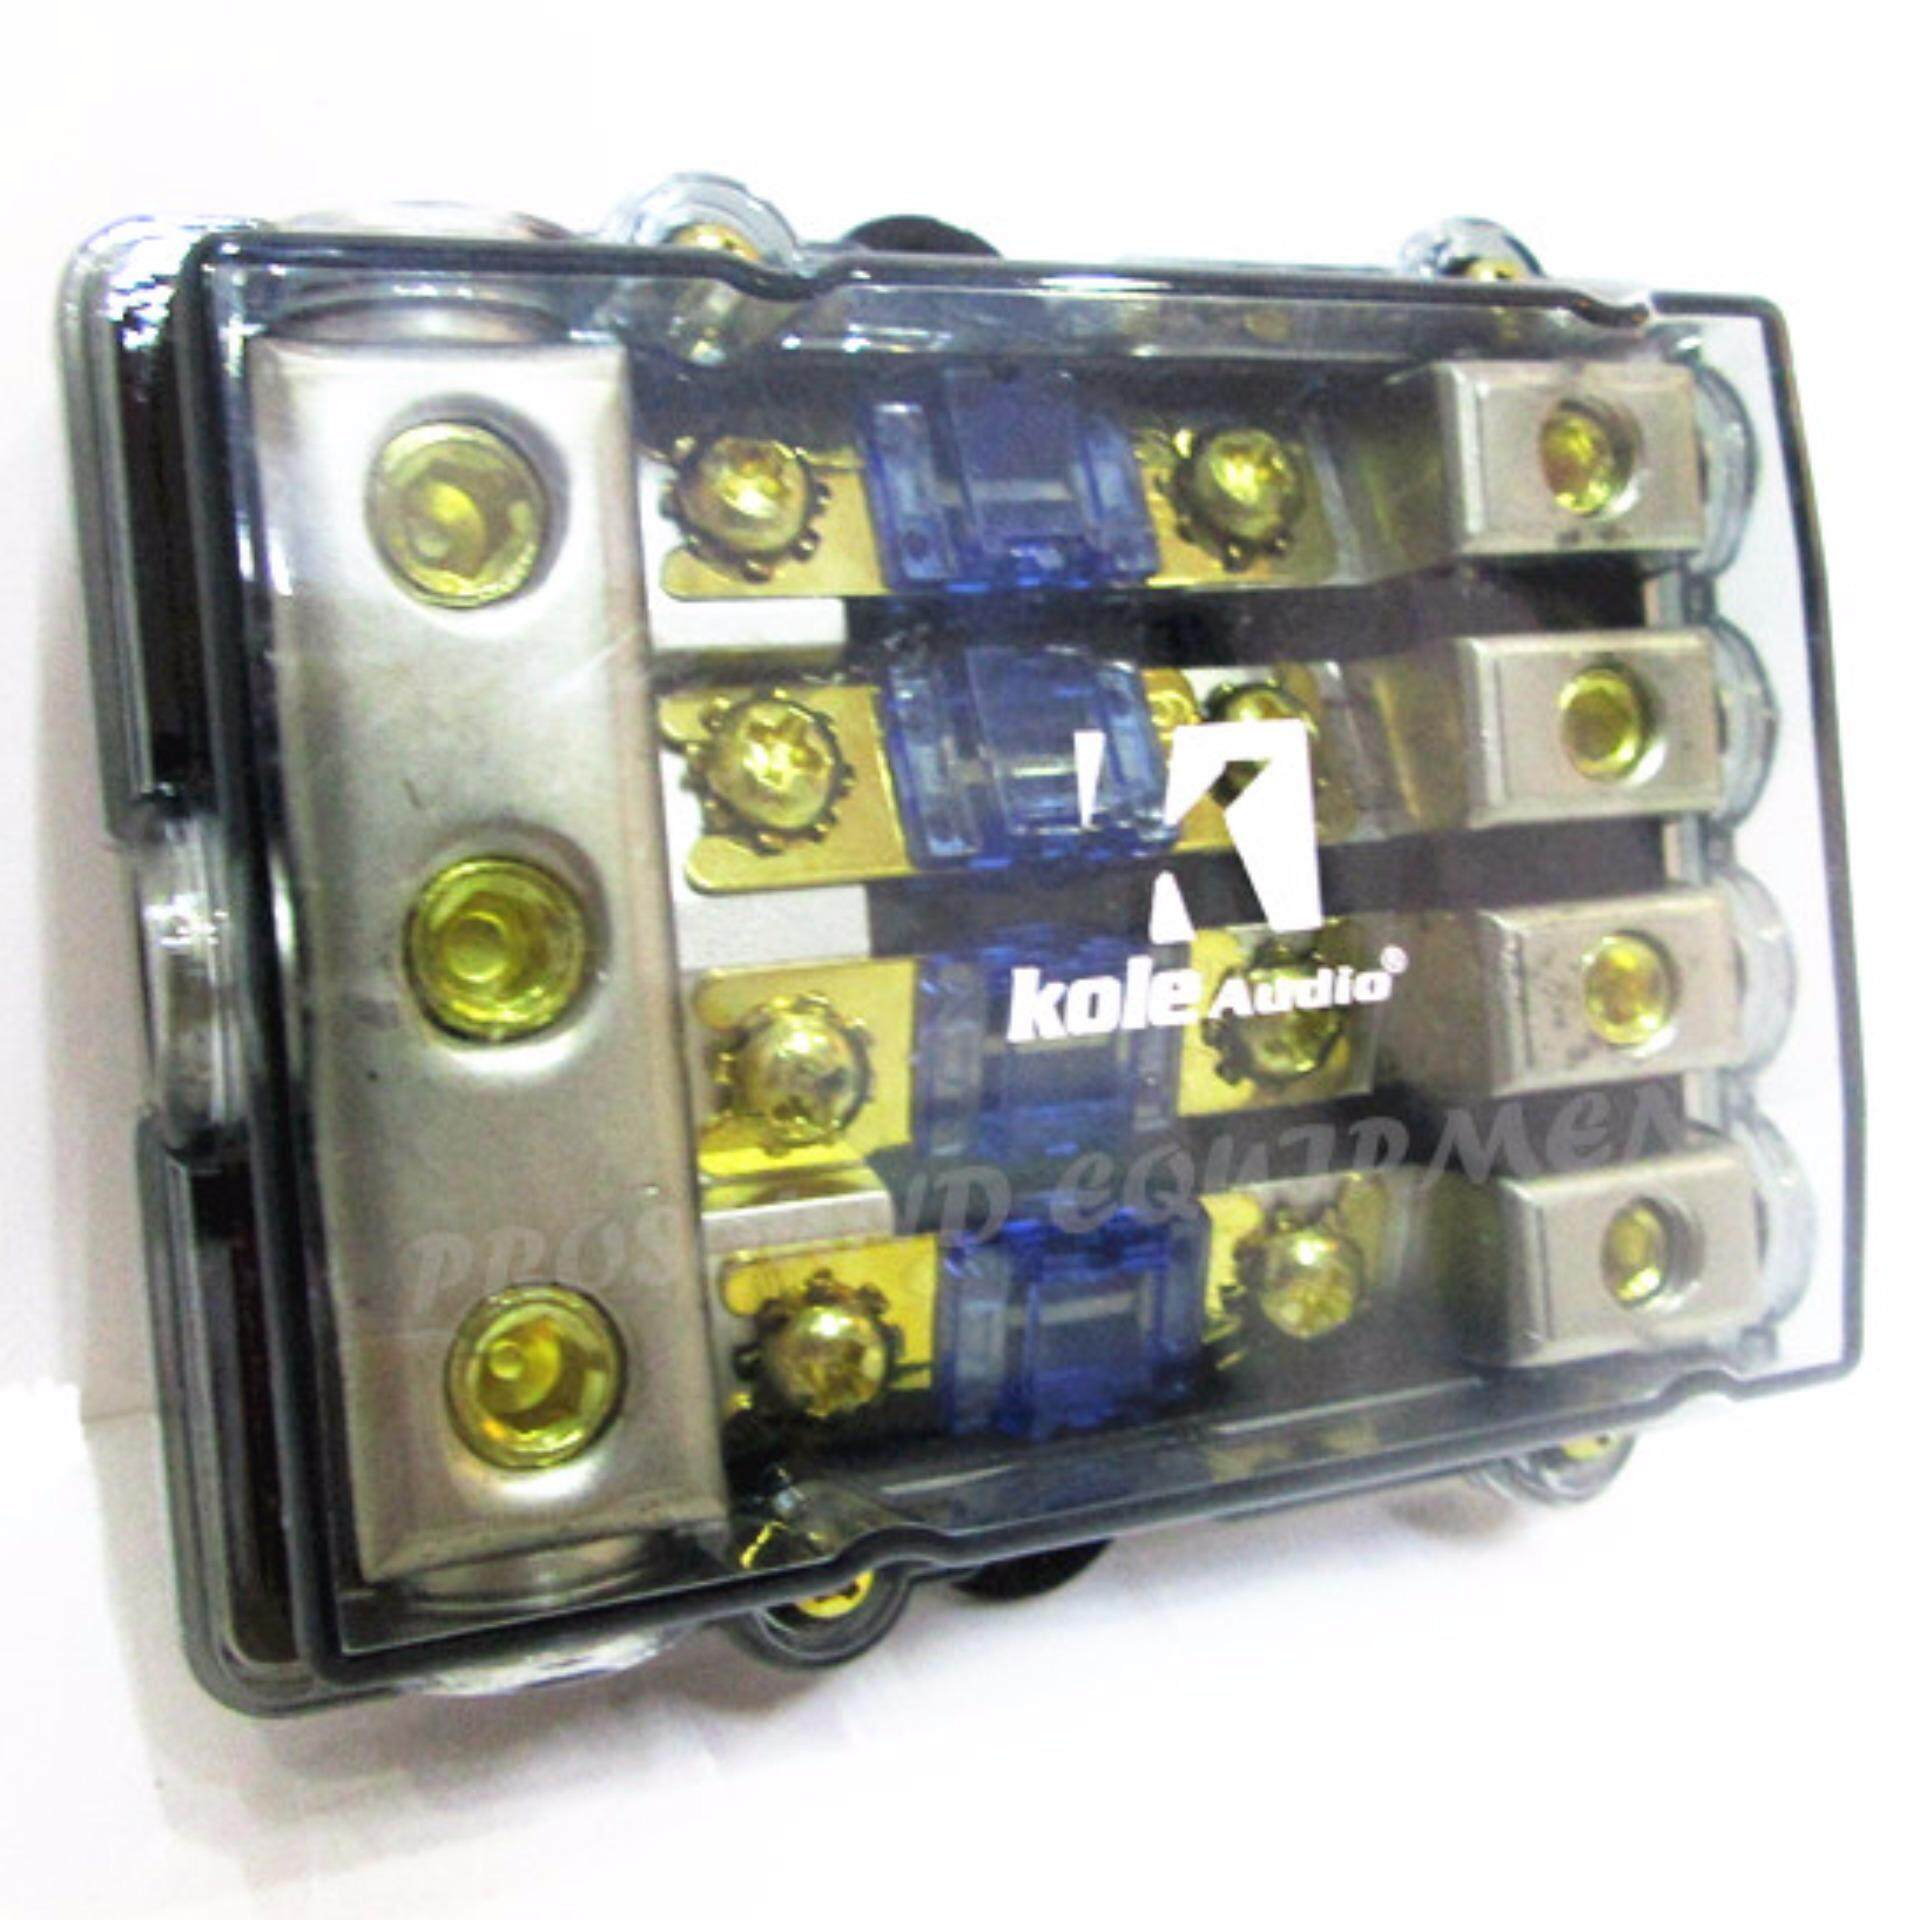 kole audio 1 on 4 fuse box holder car audio system 1488845240 96697612 85be7590e7489dda3f47d98f9b7726fd kole audio 1 on 4 fuse box holder car audio system lazada malaysia fuse box holder at gsmx.co